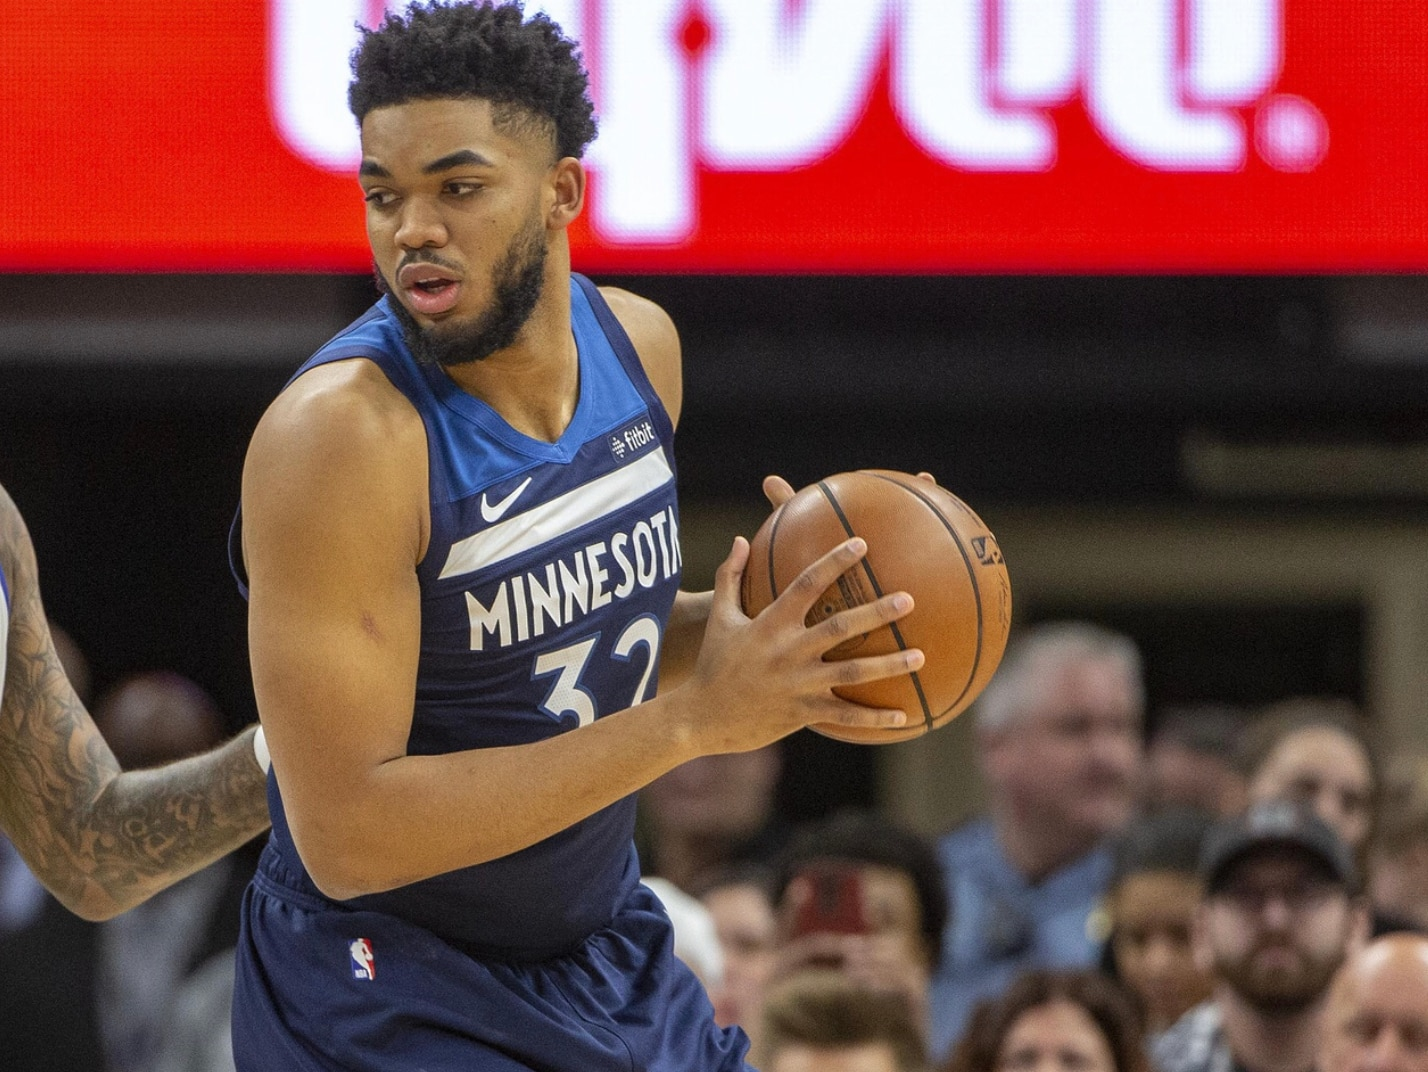 683ce0bdaf6 WATCH  Karl-Anthony Towns dunking all over the Mavericks